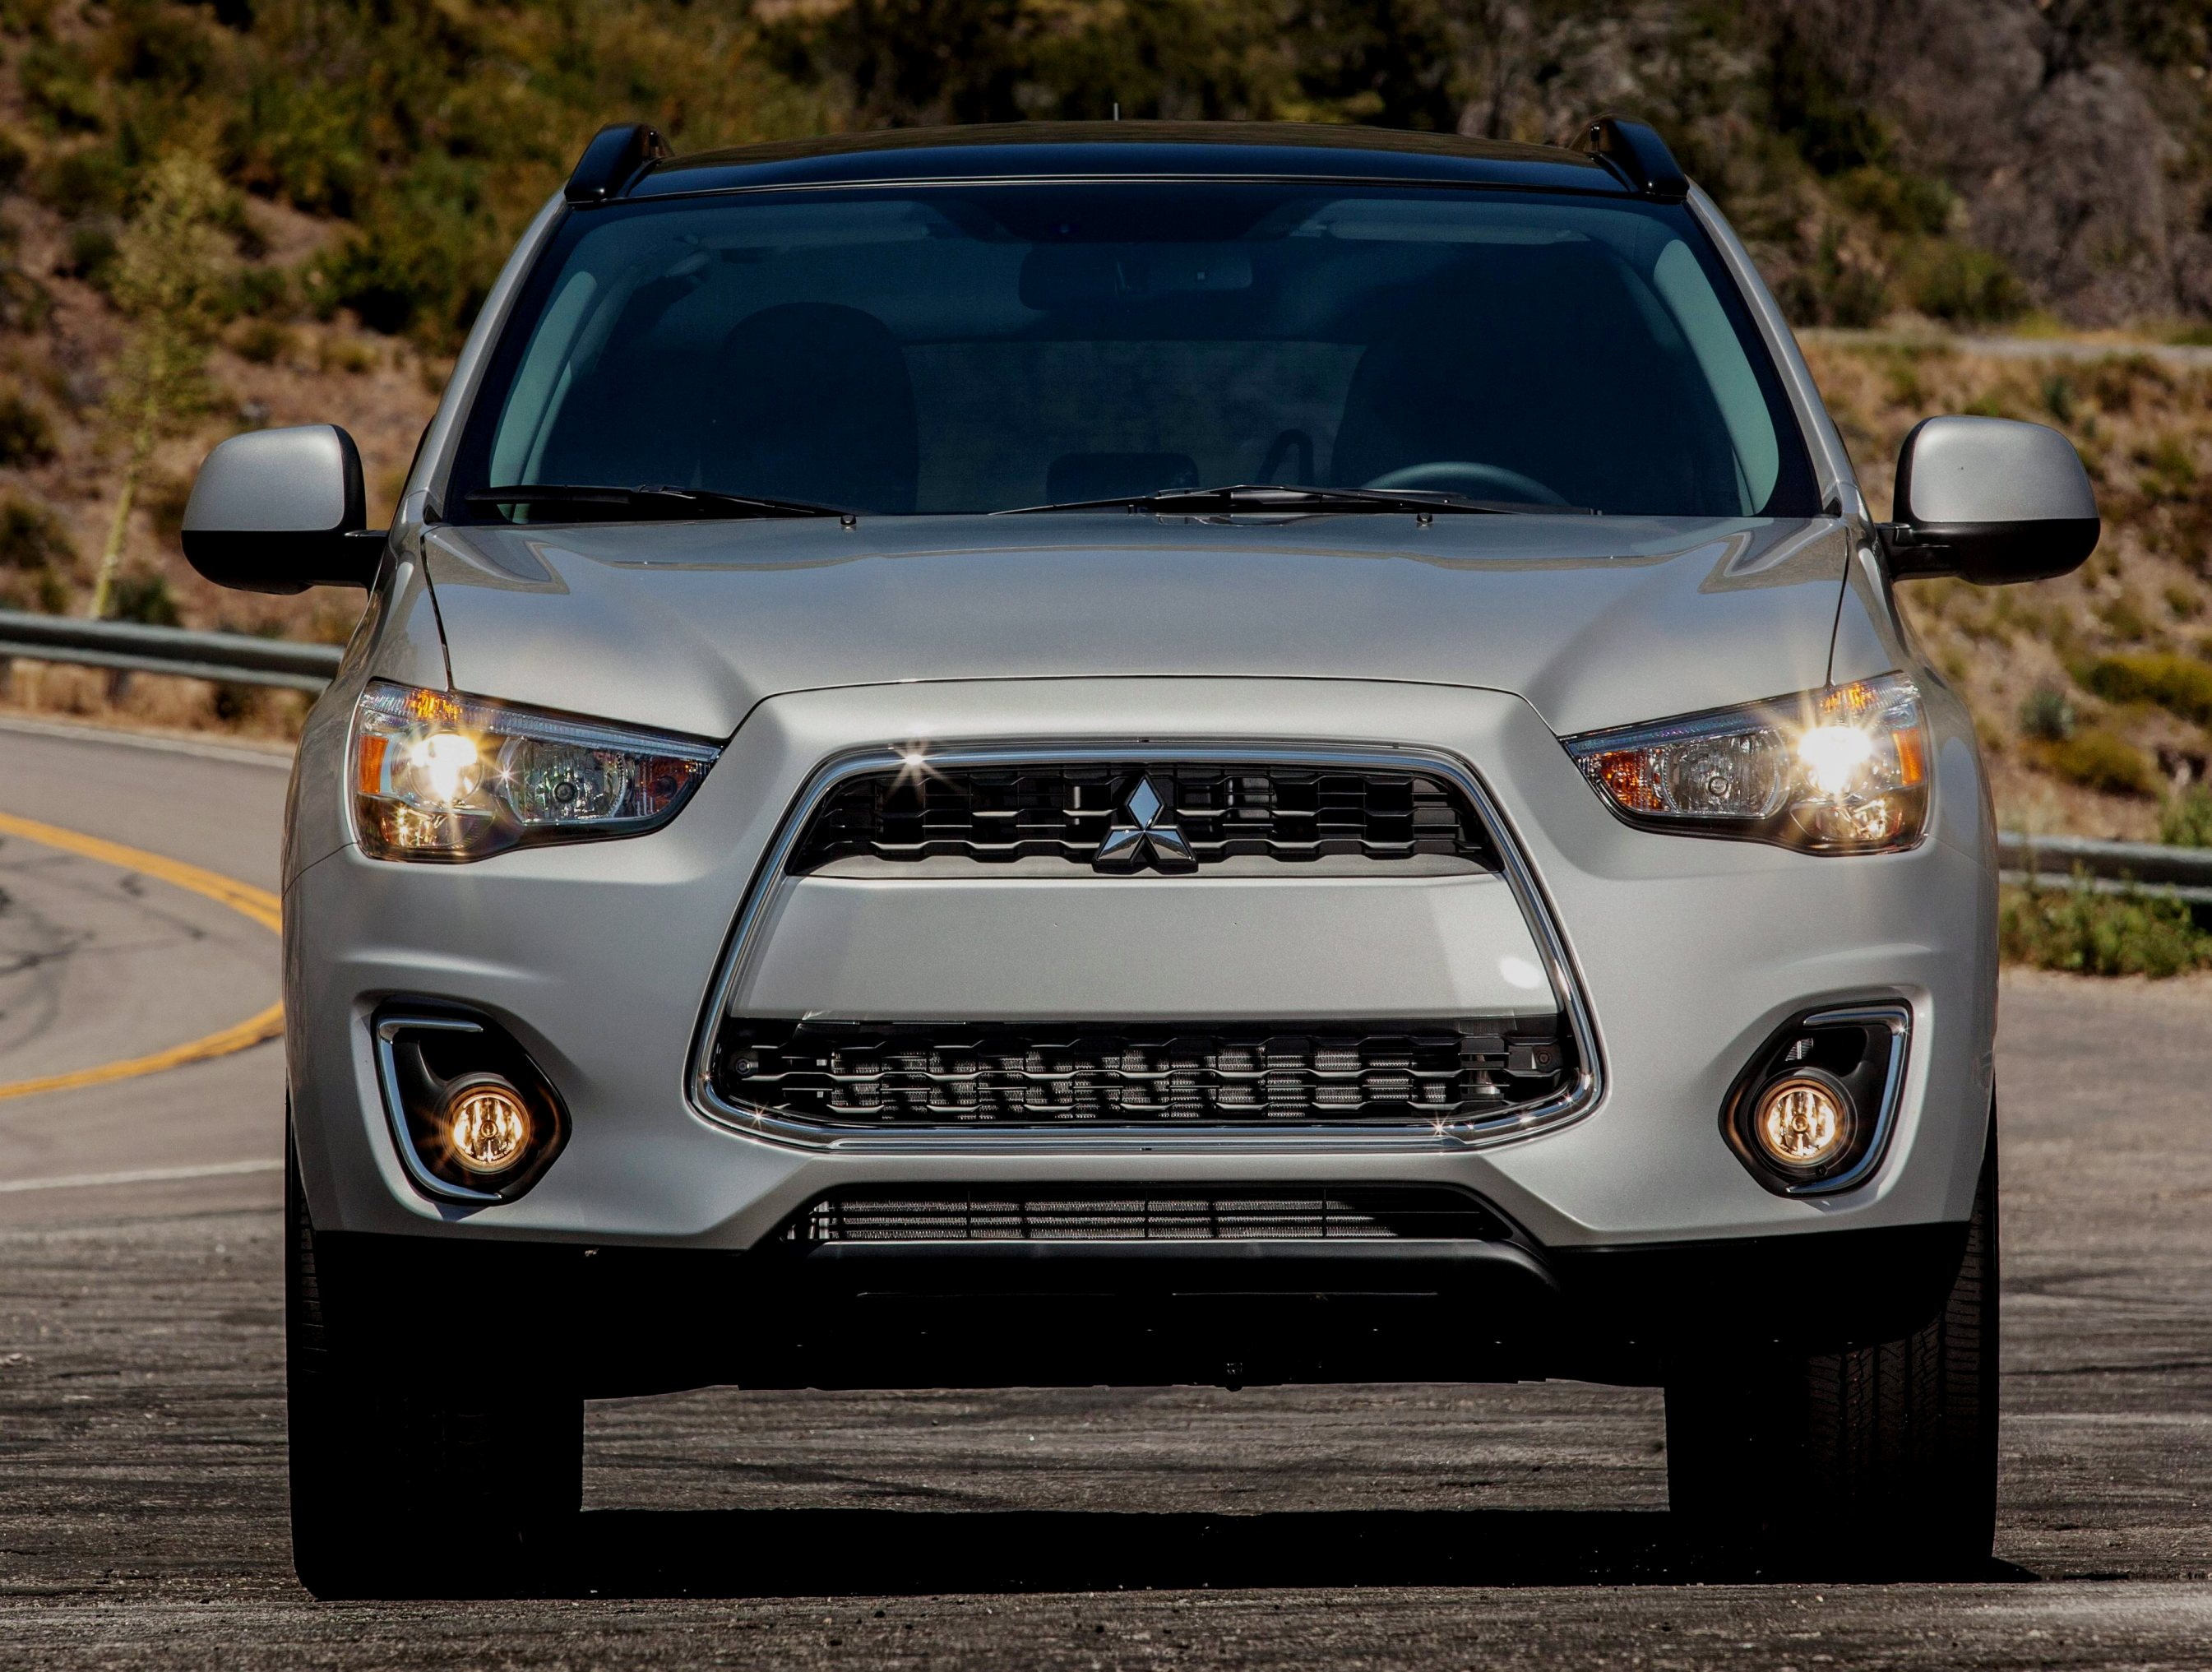 2014 2015 Mitsubishi Outlander Sport Top Speed Eclipse Efficiency And Velocity Best Auto Insurance